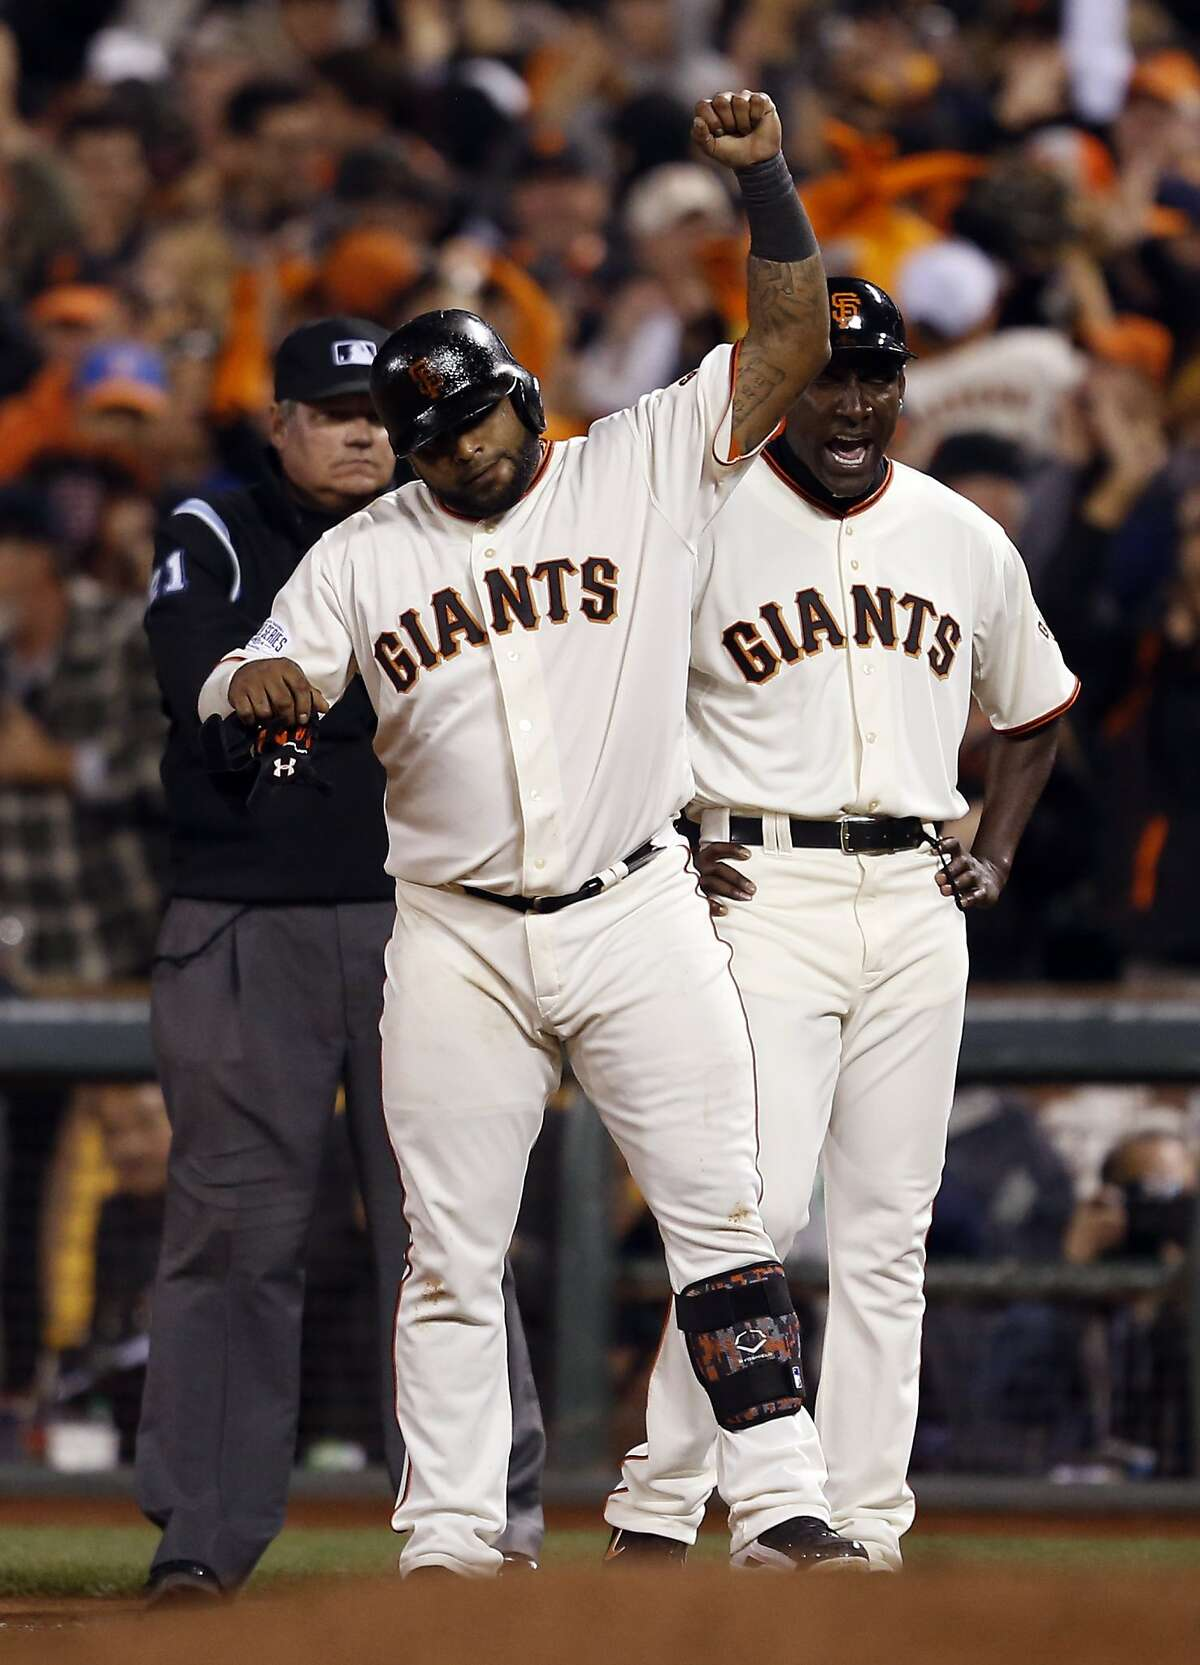 San Francisco Giants' Pablo Sandoval and 1st base coach Roberto Kelly celebrate Sandoval's 2 RBI single in 6th inning of 11-4 win over Kansas City Royals in Game 4 of the World Series at AT&T Park in San Francisco, Calif.. on Saturday, October 25, 2014.